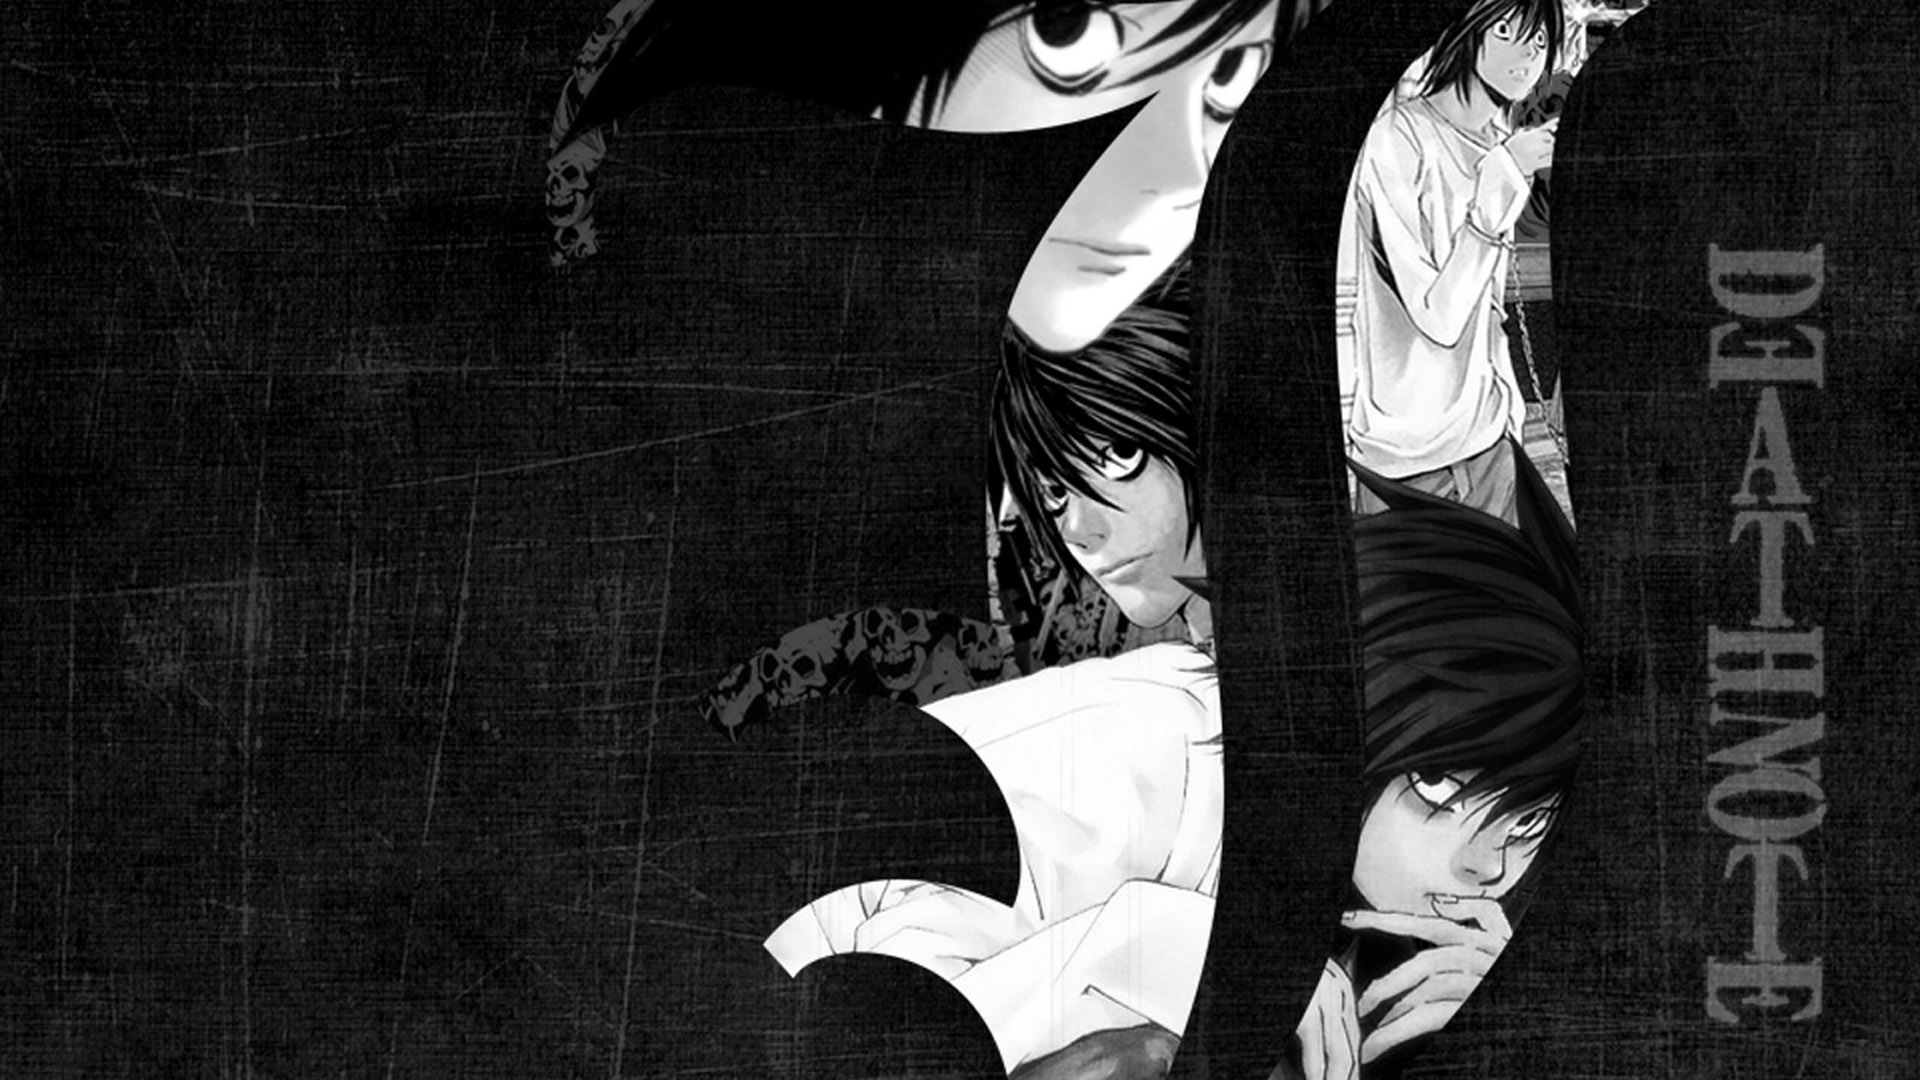 Death Note 125224 Hd Wallpaper Backgrounds Download